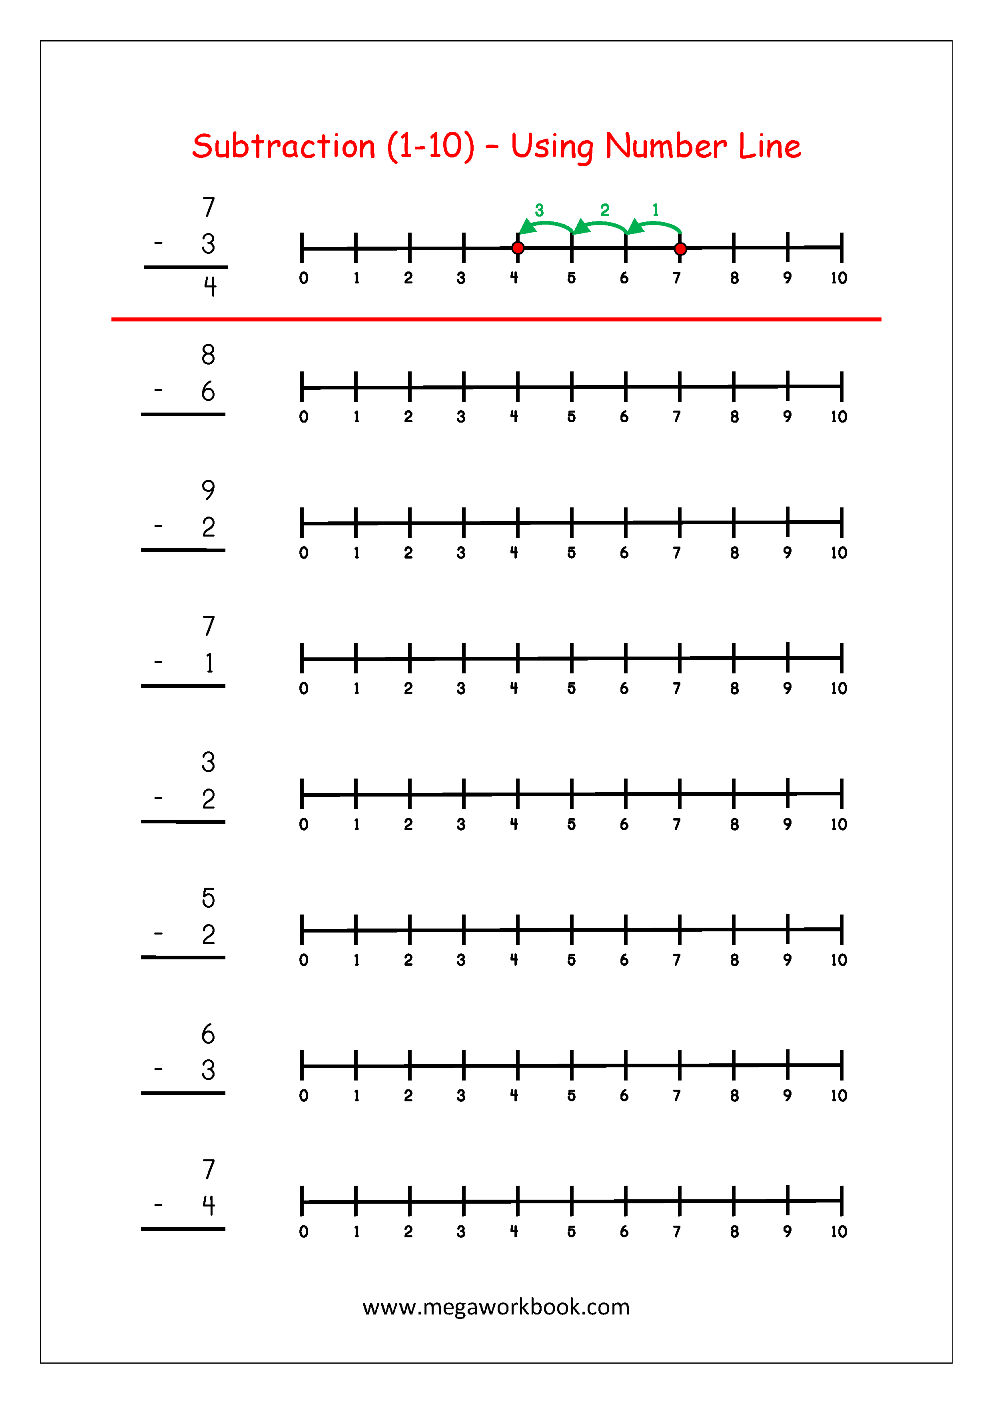 hight resolution of Subtraction Worksheets - Subtraction With Pictures/Objects/Tally Marks To  Cross Out - Subtraction Using Number Line in 2020   Kindergarten worksheets  free printables